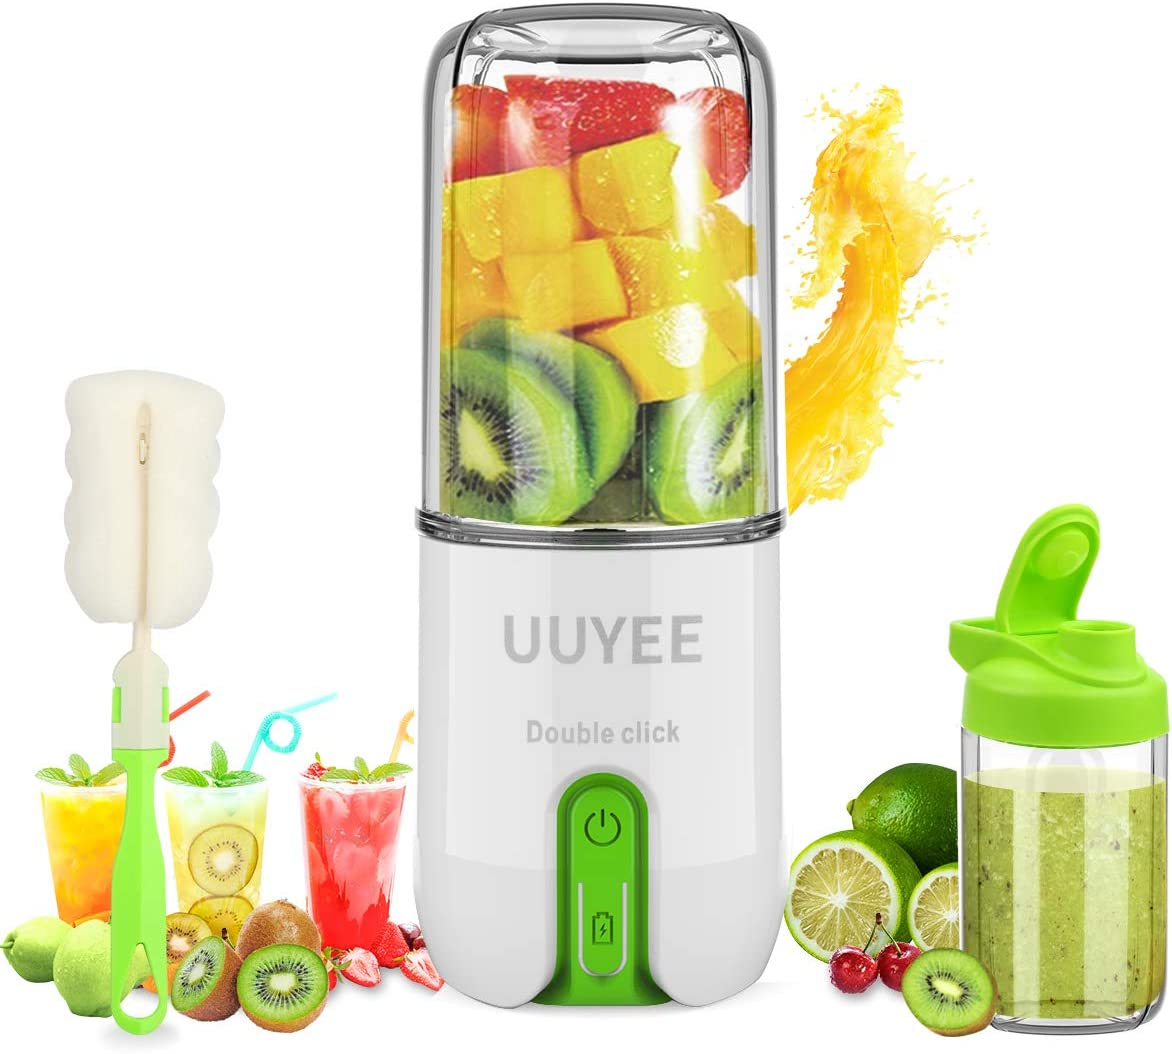 【Upgraded 16oz Portable Blender】UUYEE Personal Blender for Shakes and Smoothies, Mini Blender & Juicer Mixer, USB Rechargeable Blender with Six Large Blades and Tritan Cup for Sports,Travel,Gym